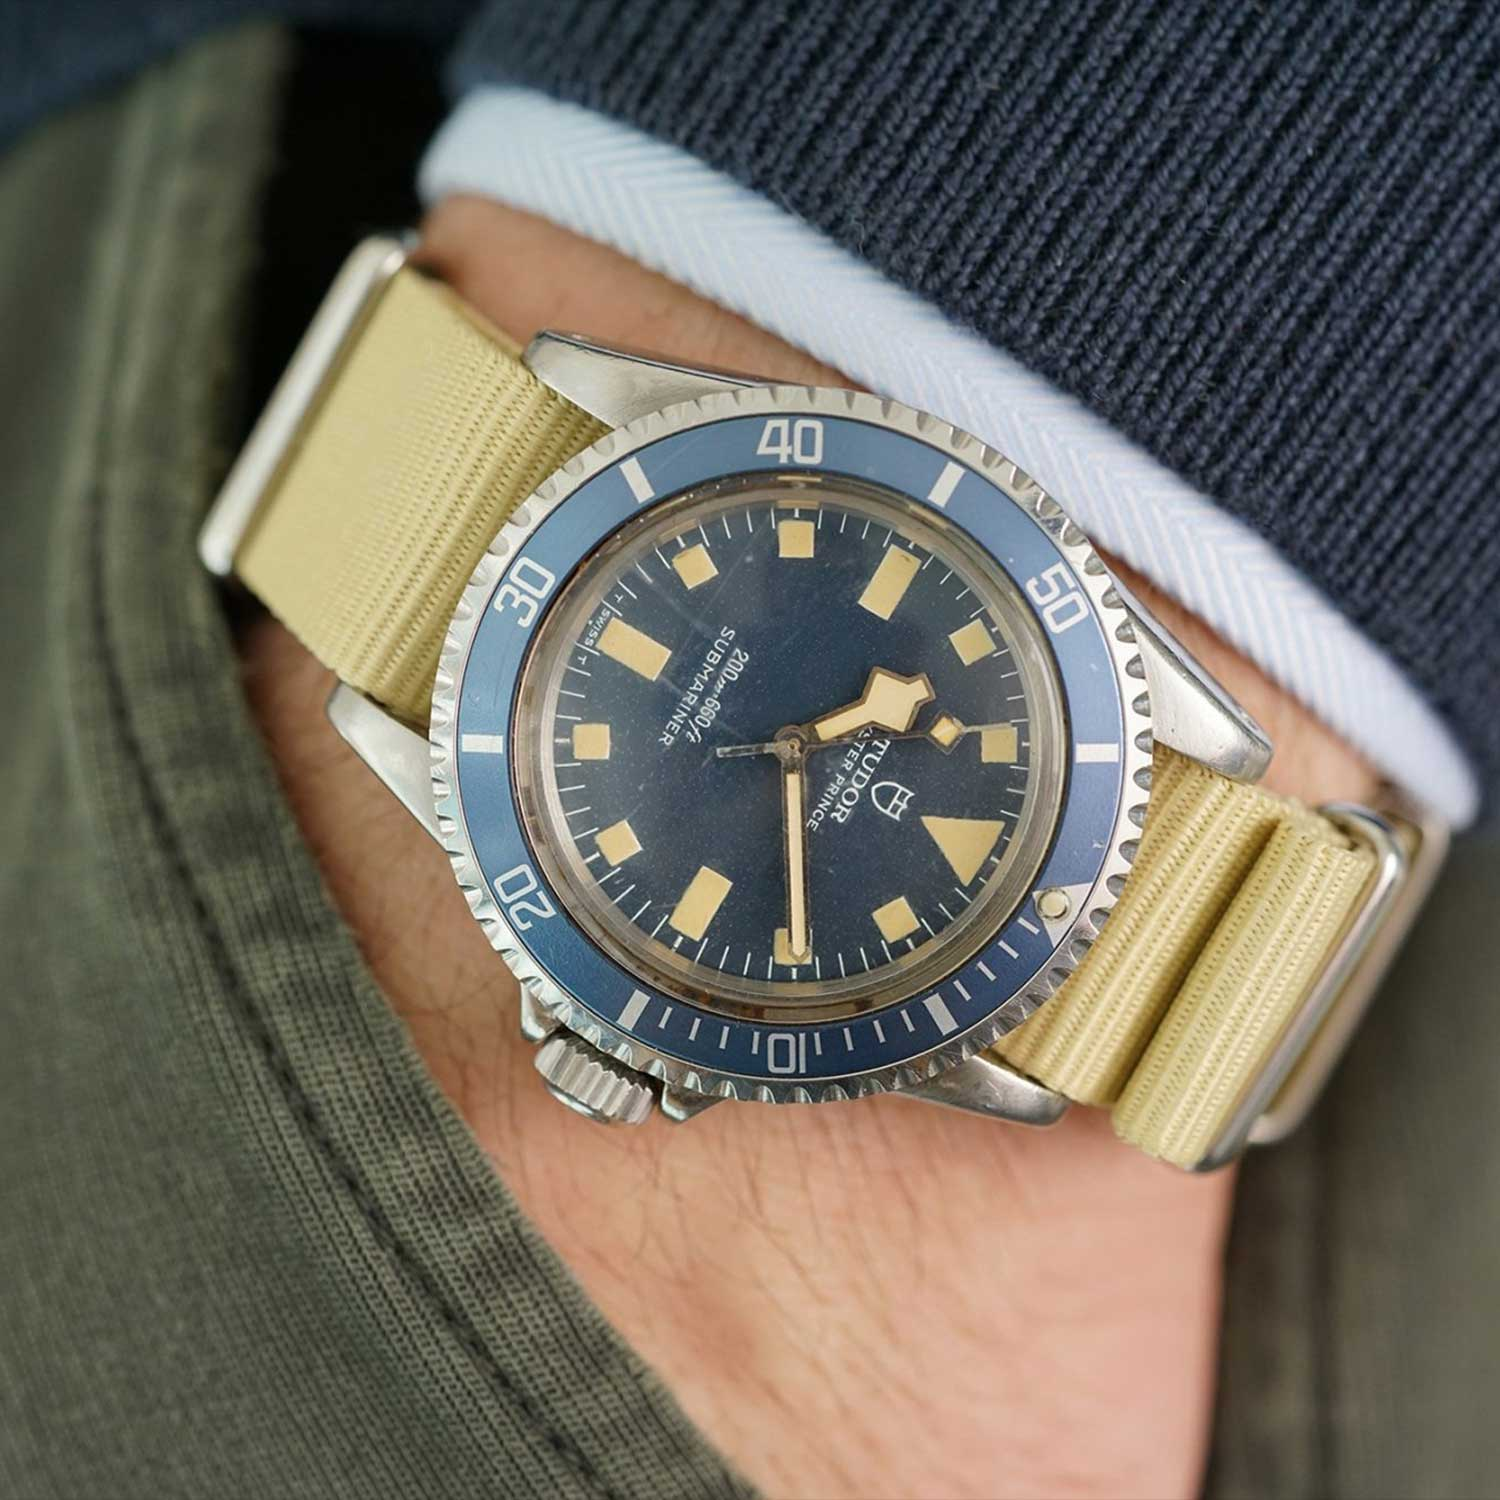 Lot 45: Tudor military Marine Nationale Ref. 9401/0 sold for CHF 40,000